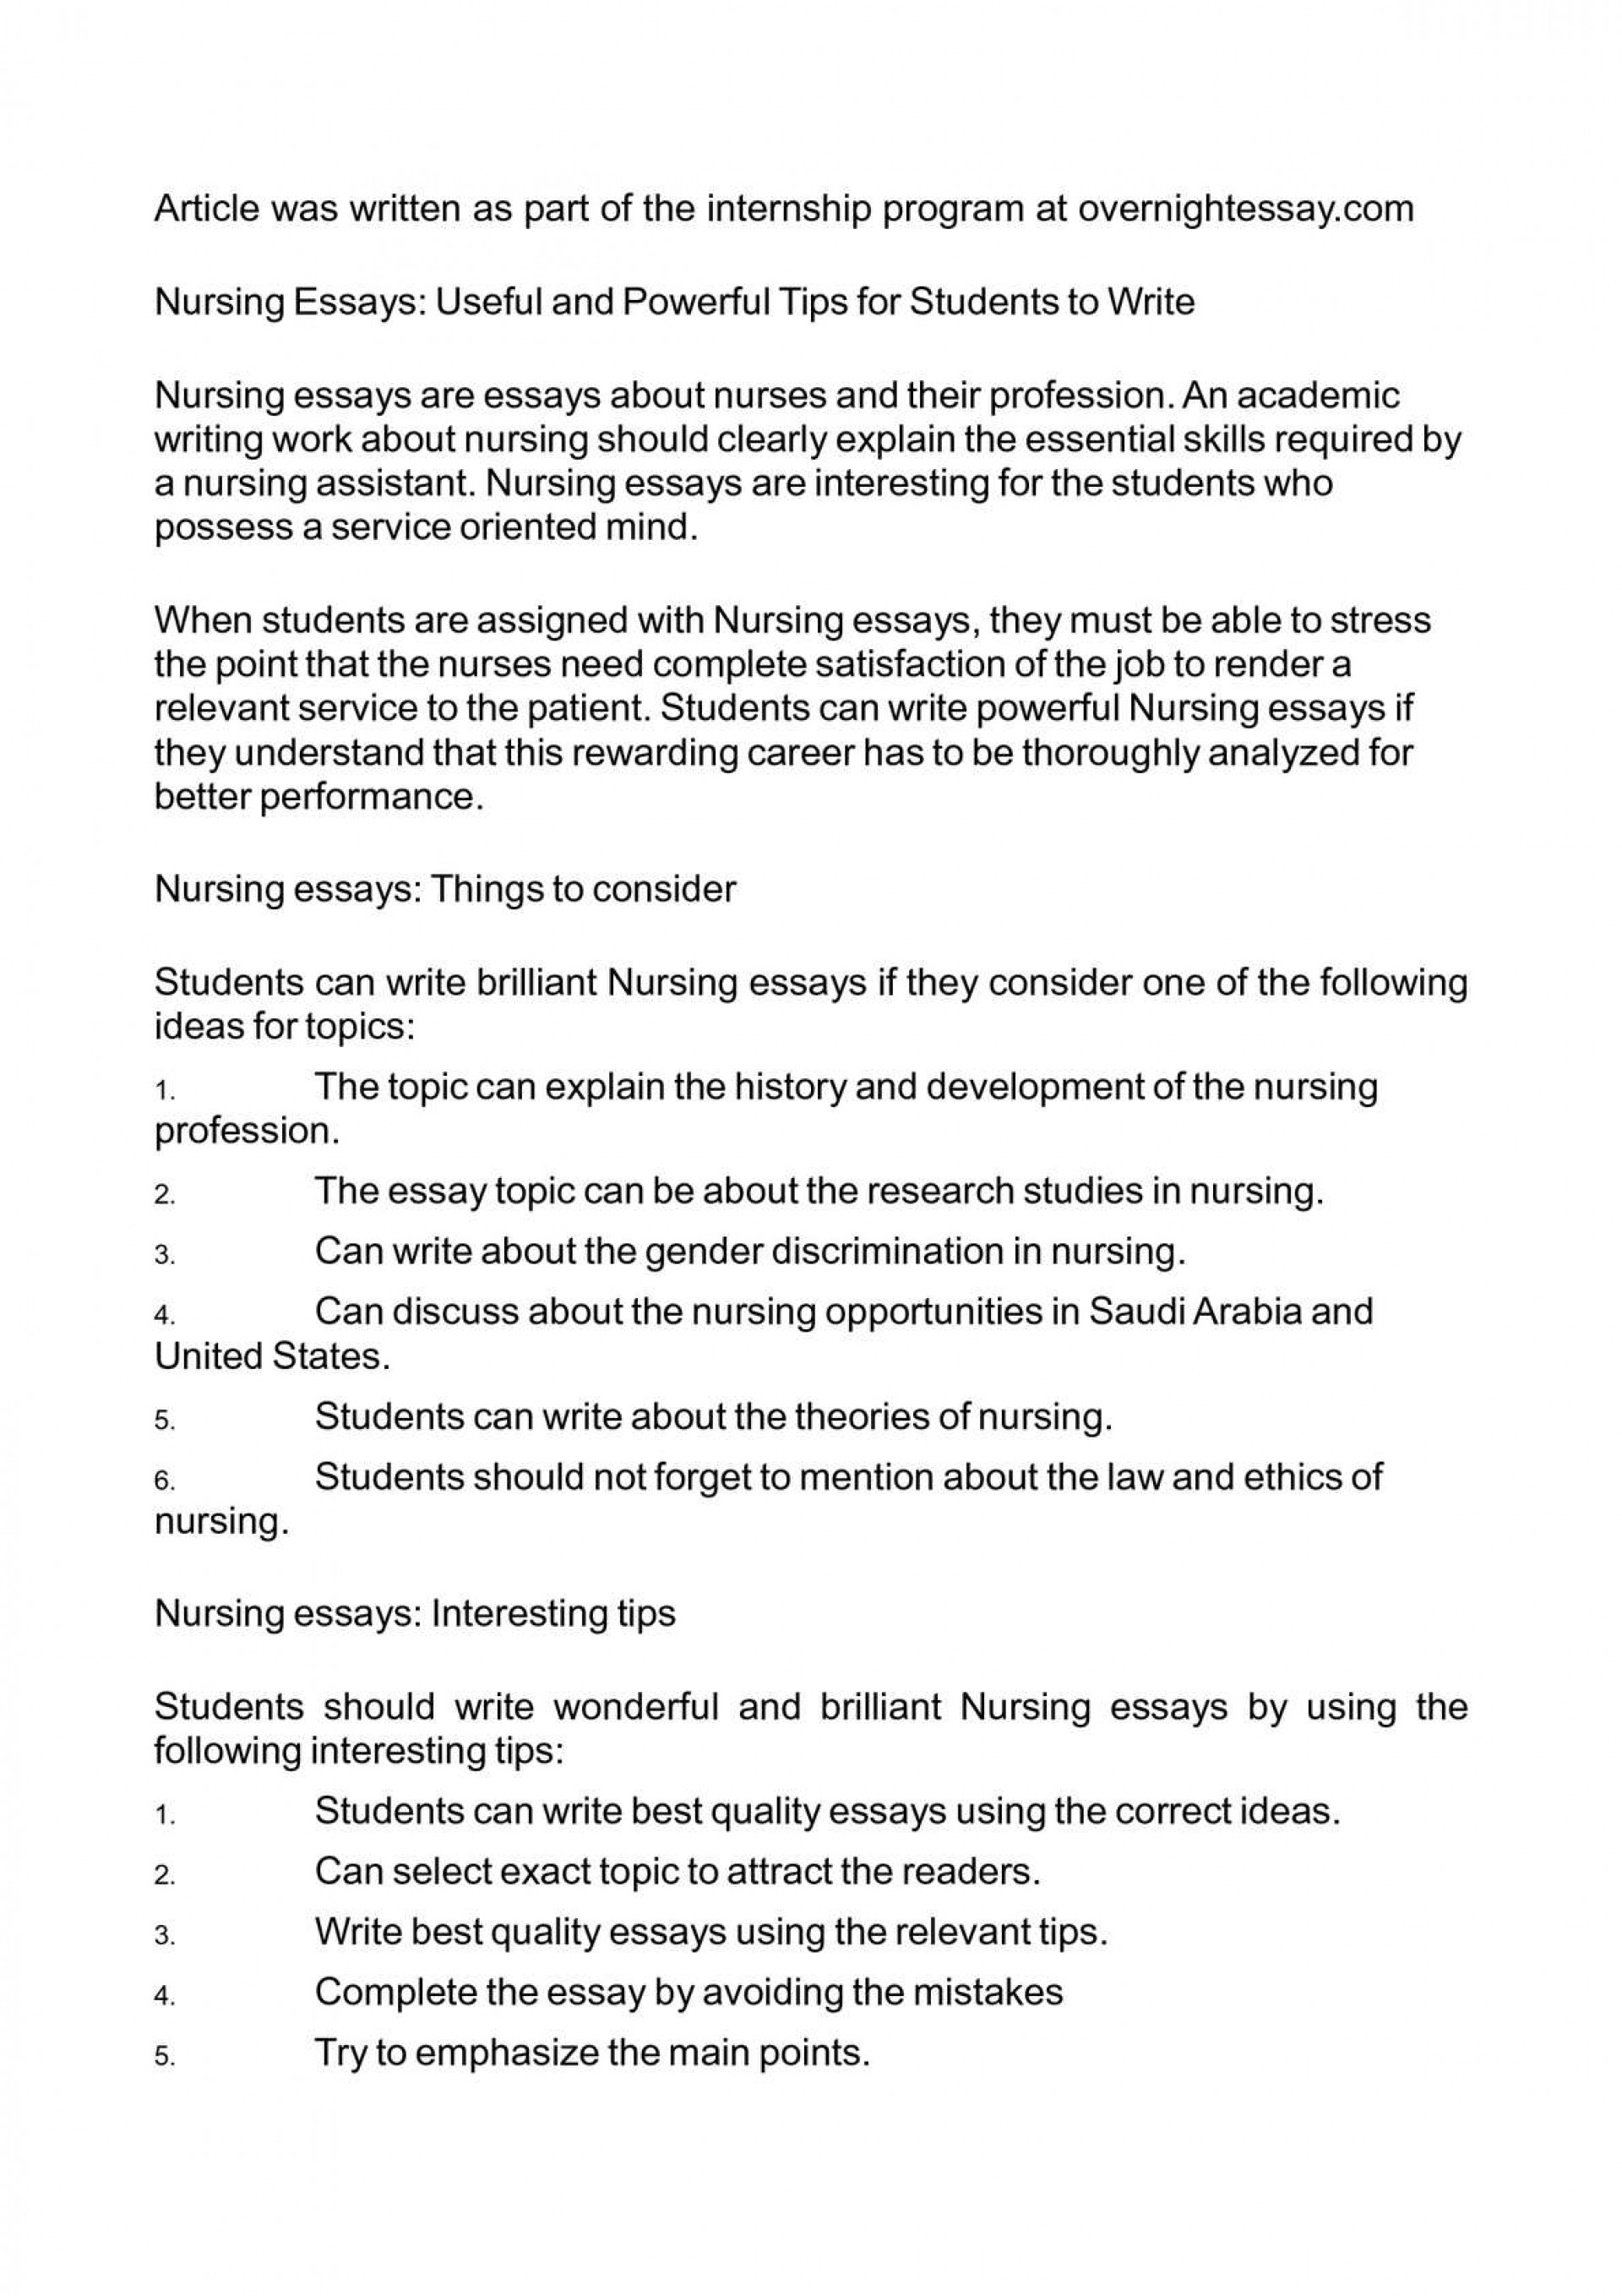 003 P1 Essay Example On Nursing As Shocking A Profession Professionalism In Pakistan 1920